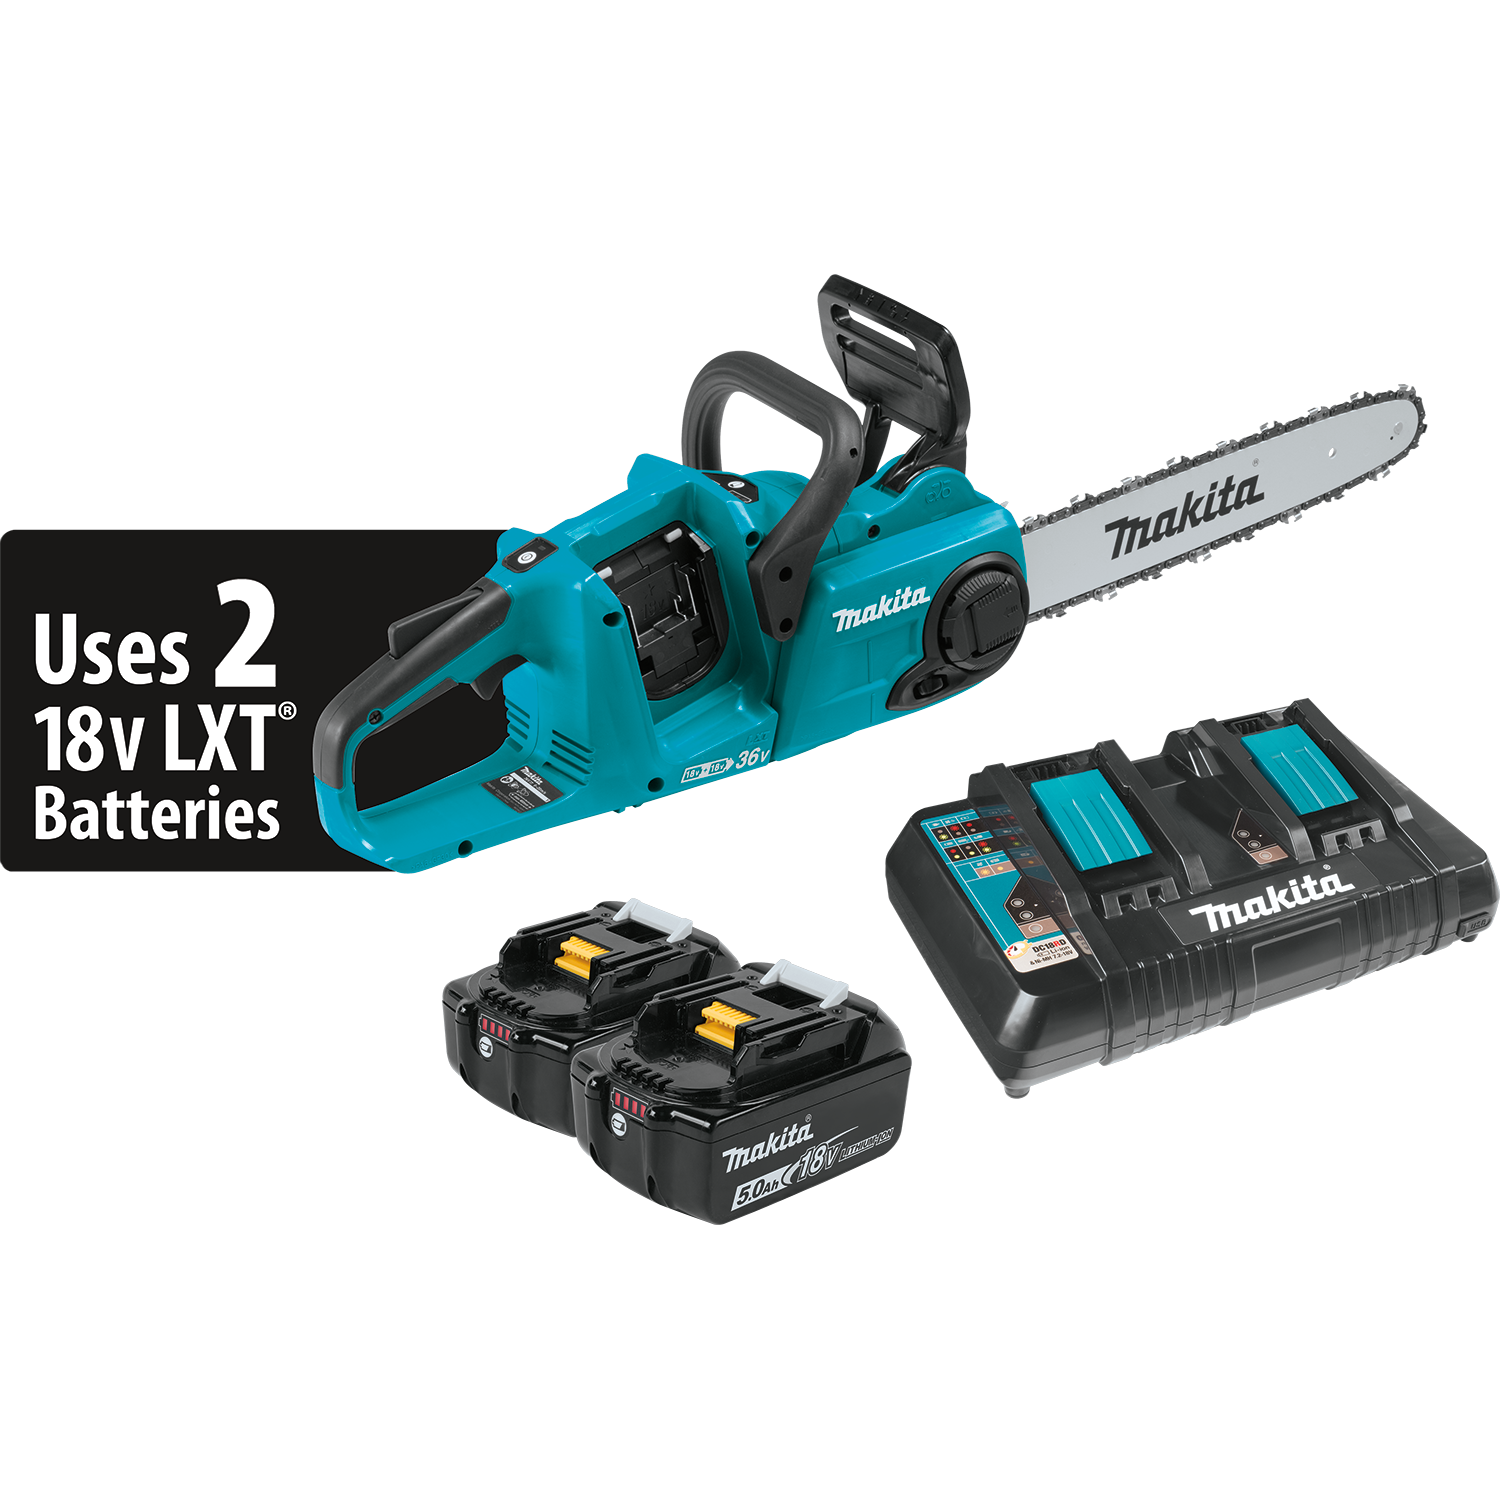 Makita usa product details xcu03pt xcu03pt keyboard keysfo Image collections